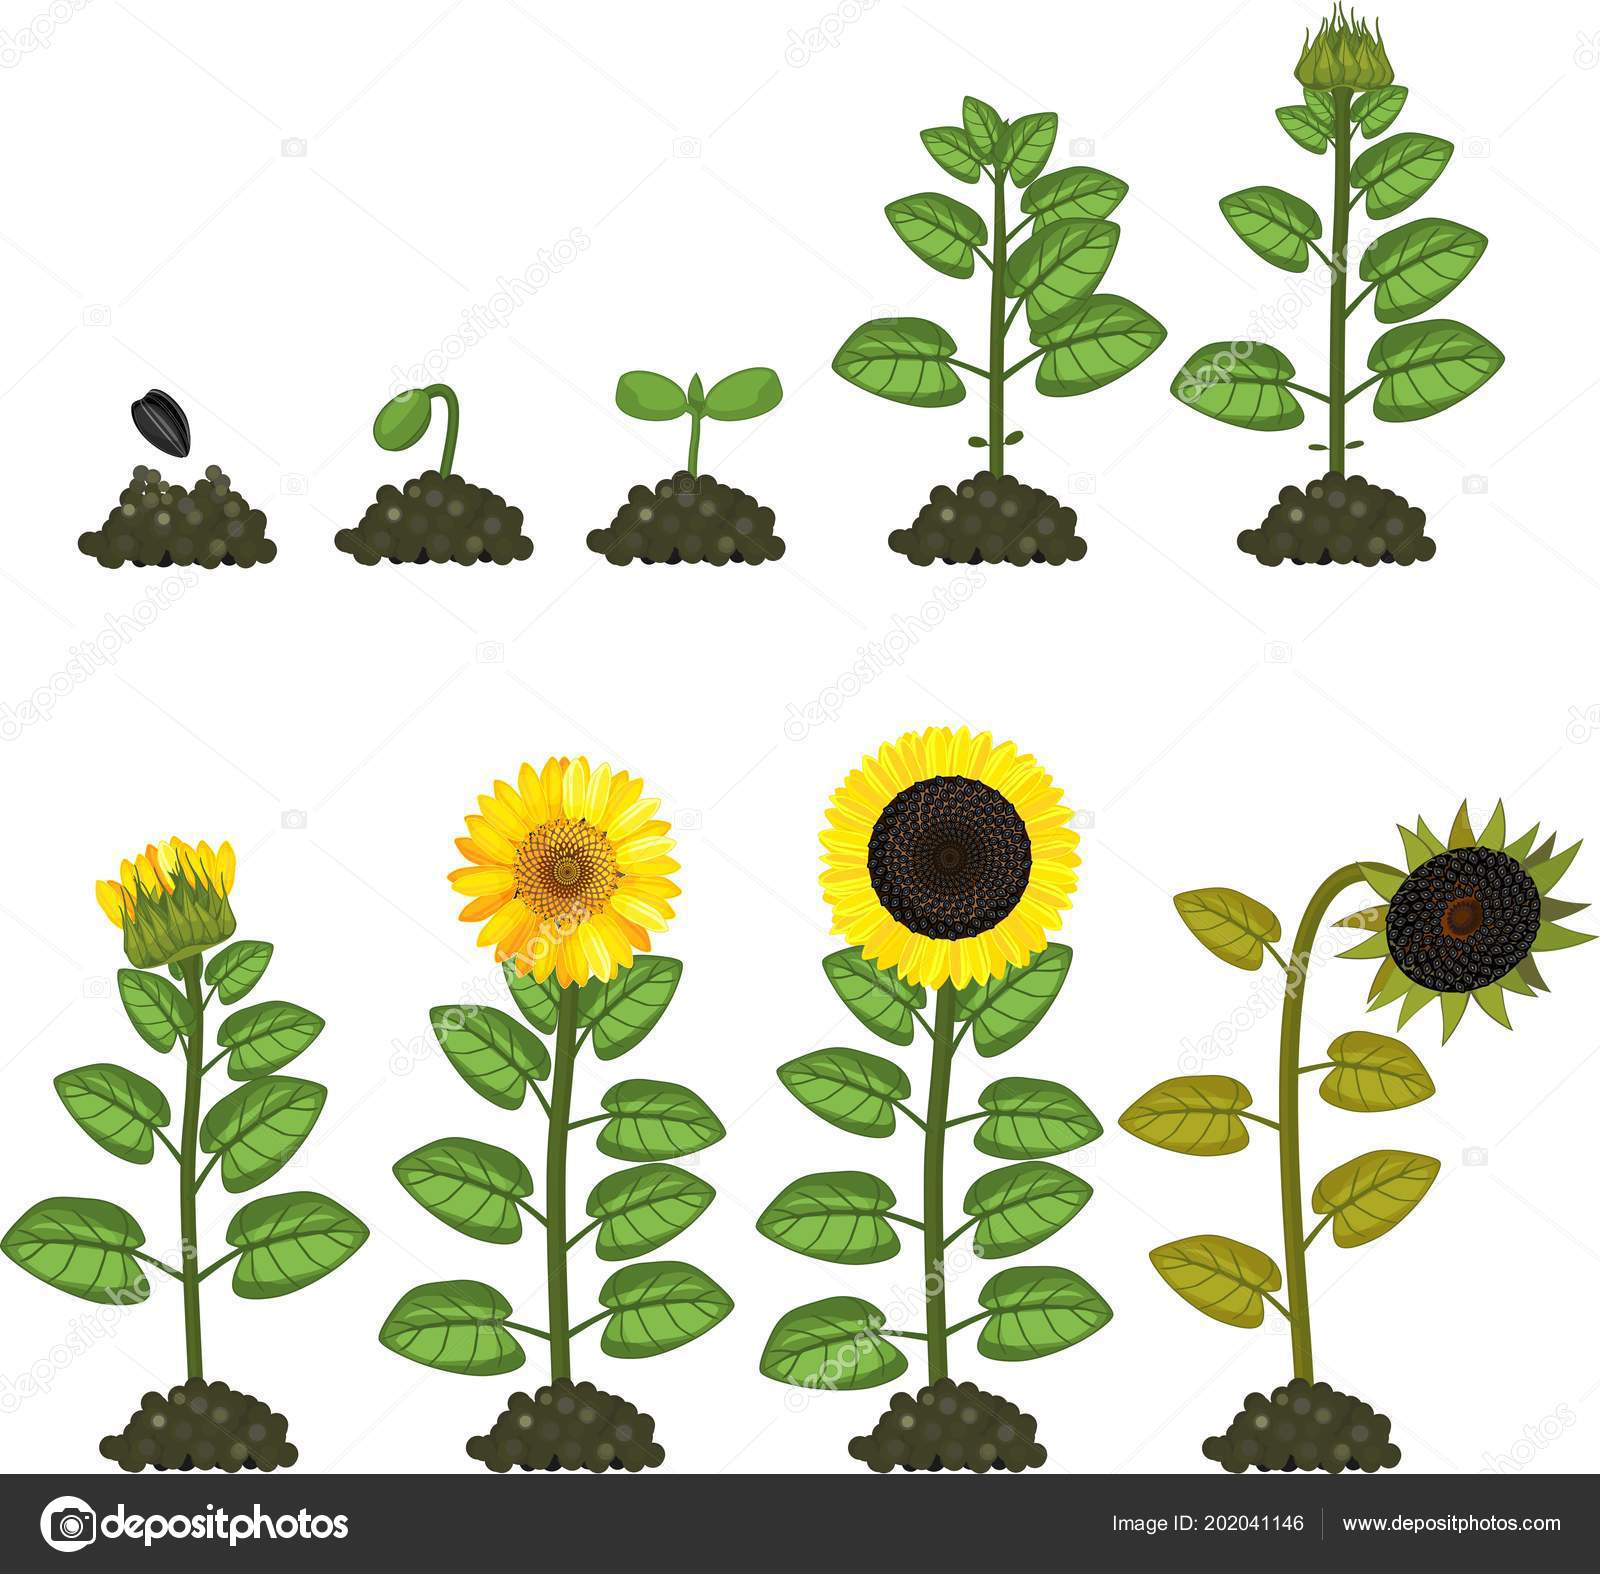 Sunflower Life Cycle Growth Stages Seed Flowering Fruit Bearing Plant Stock Vector C Mariaflaya 202041146